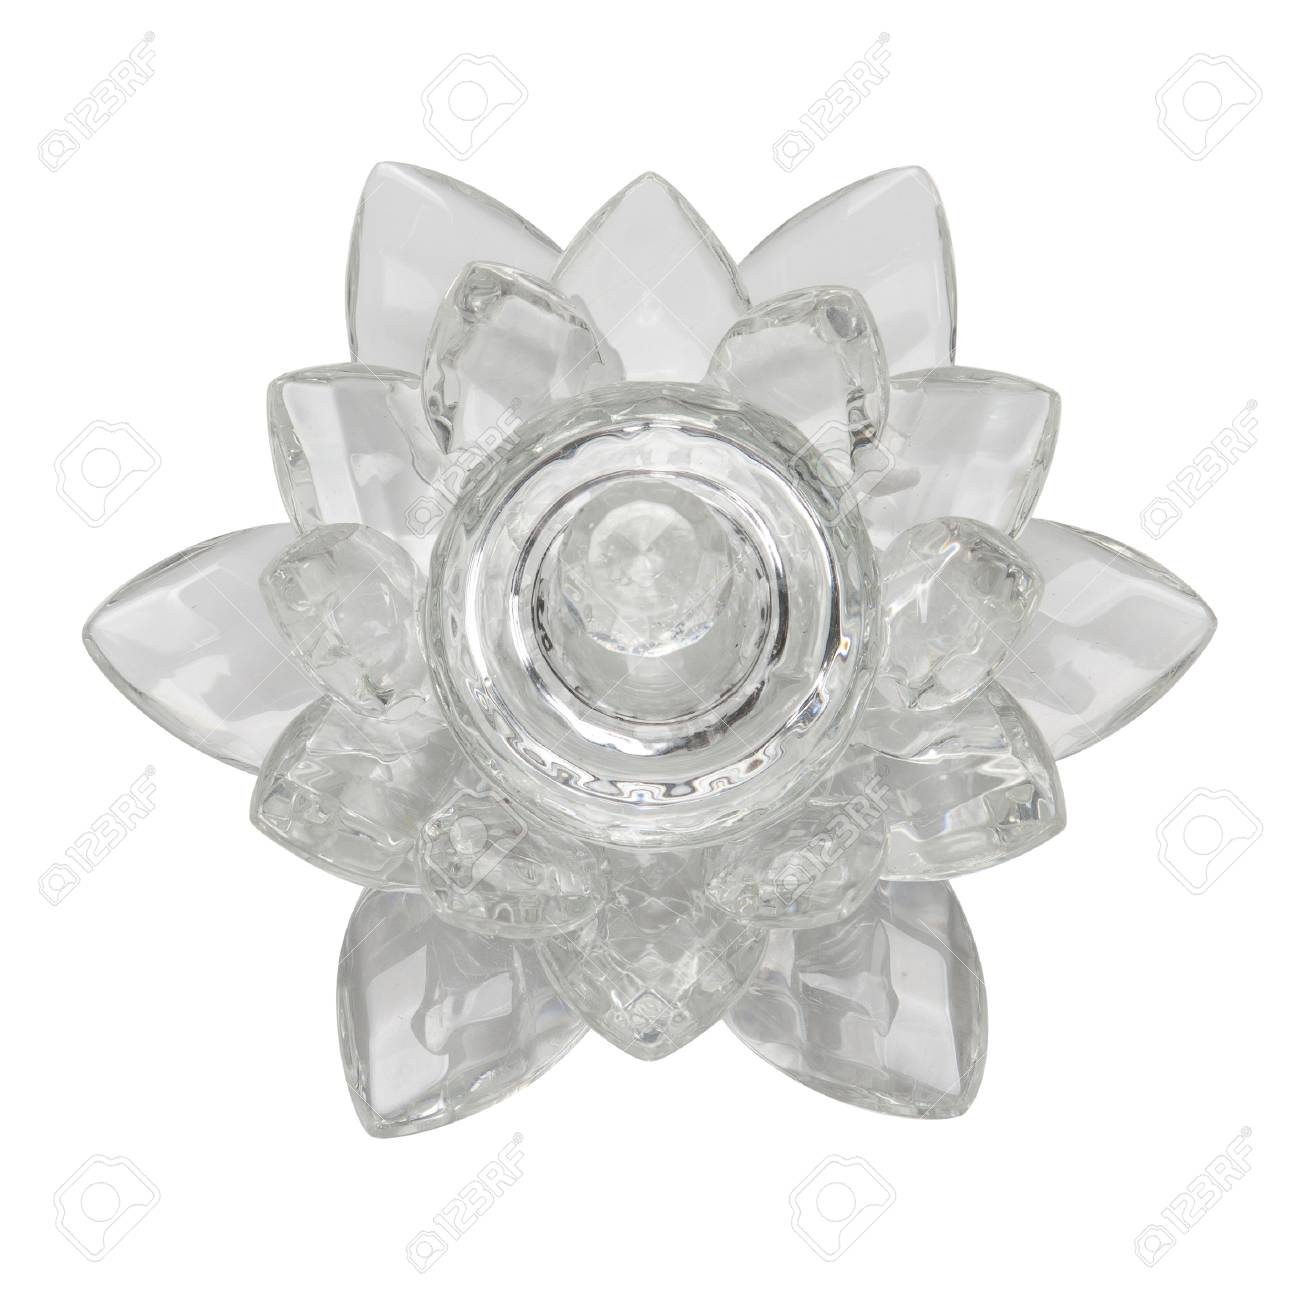 Crystal Lotus On White Background Stock Photo Picture And Royalty